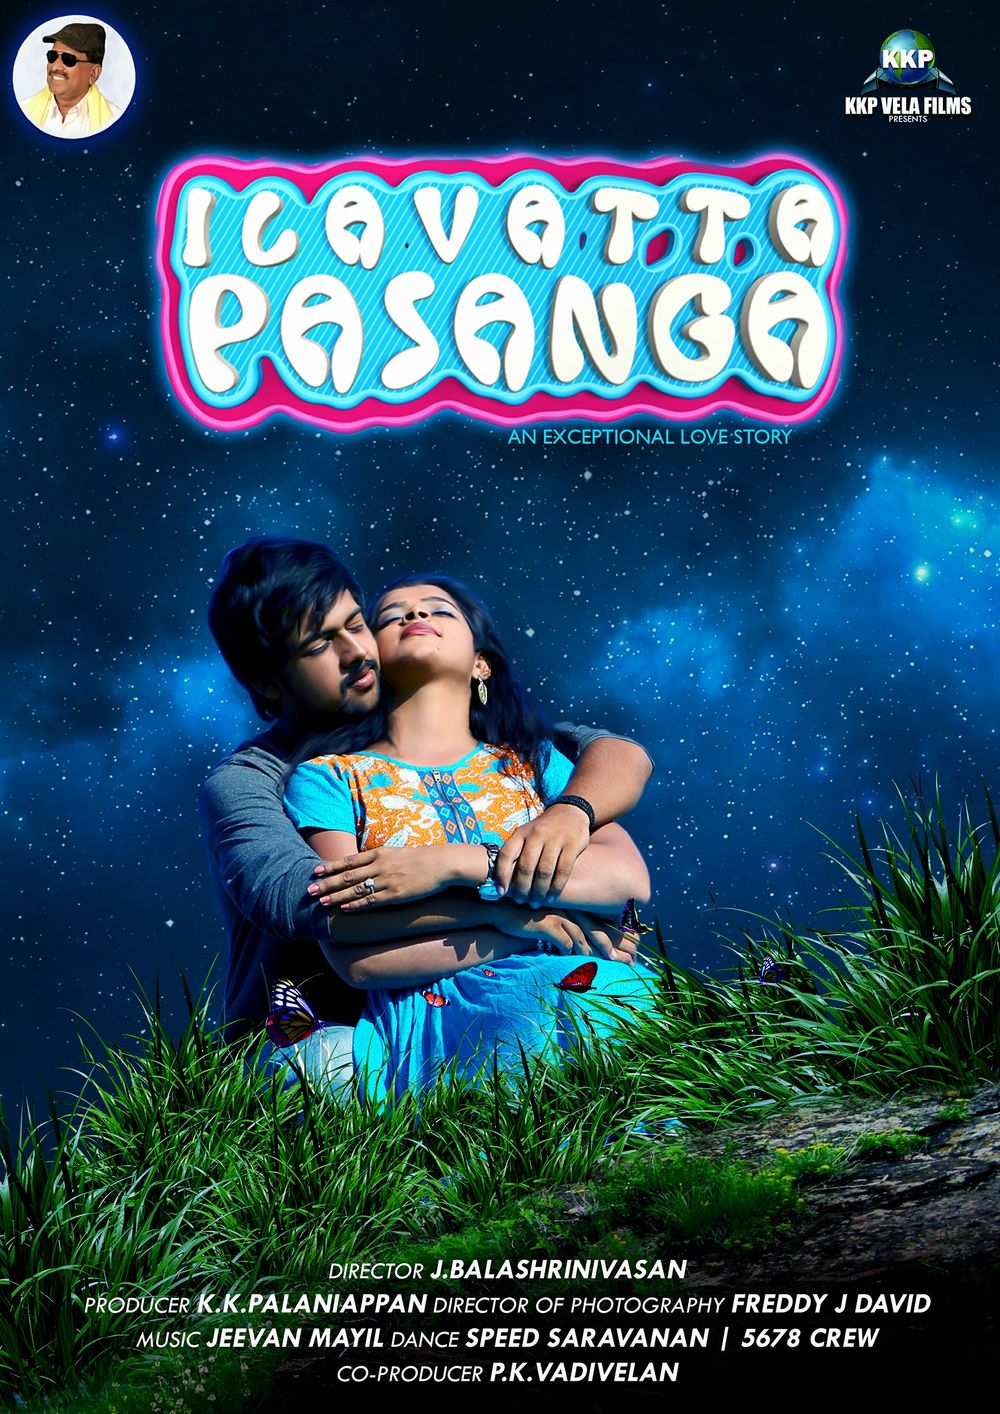 Ilavatta Pasanga Movie Review